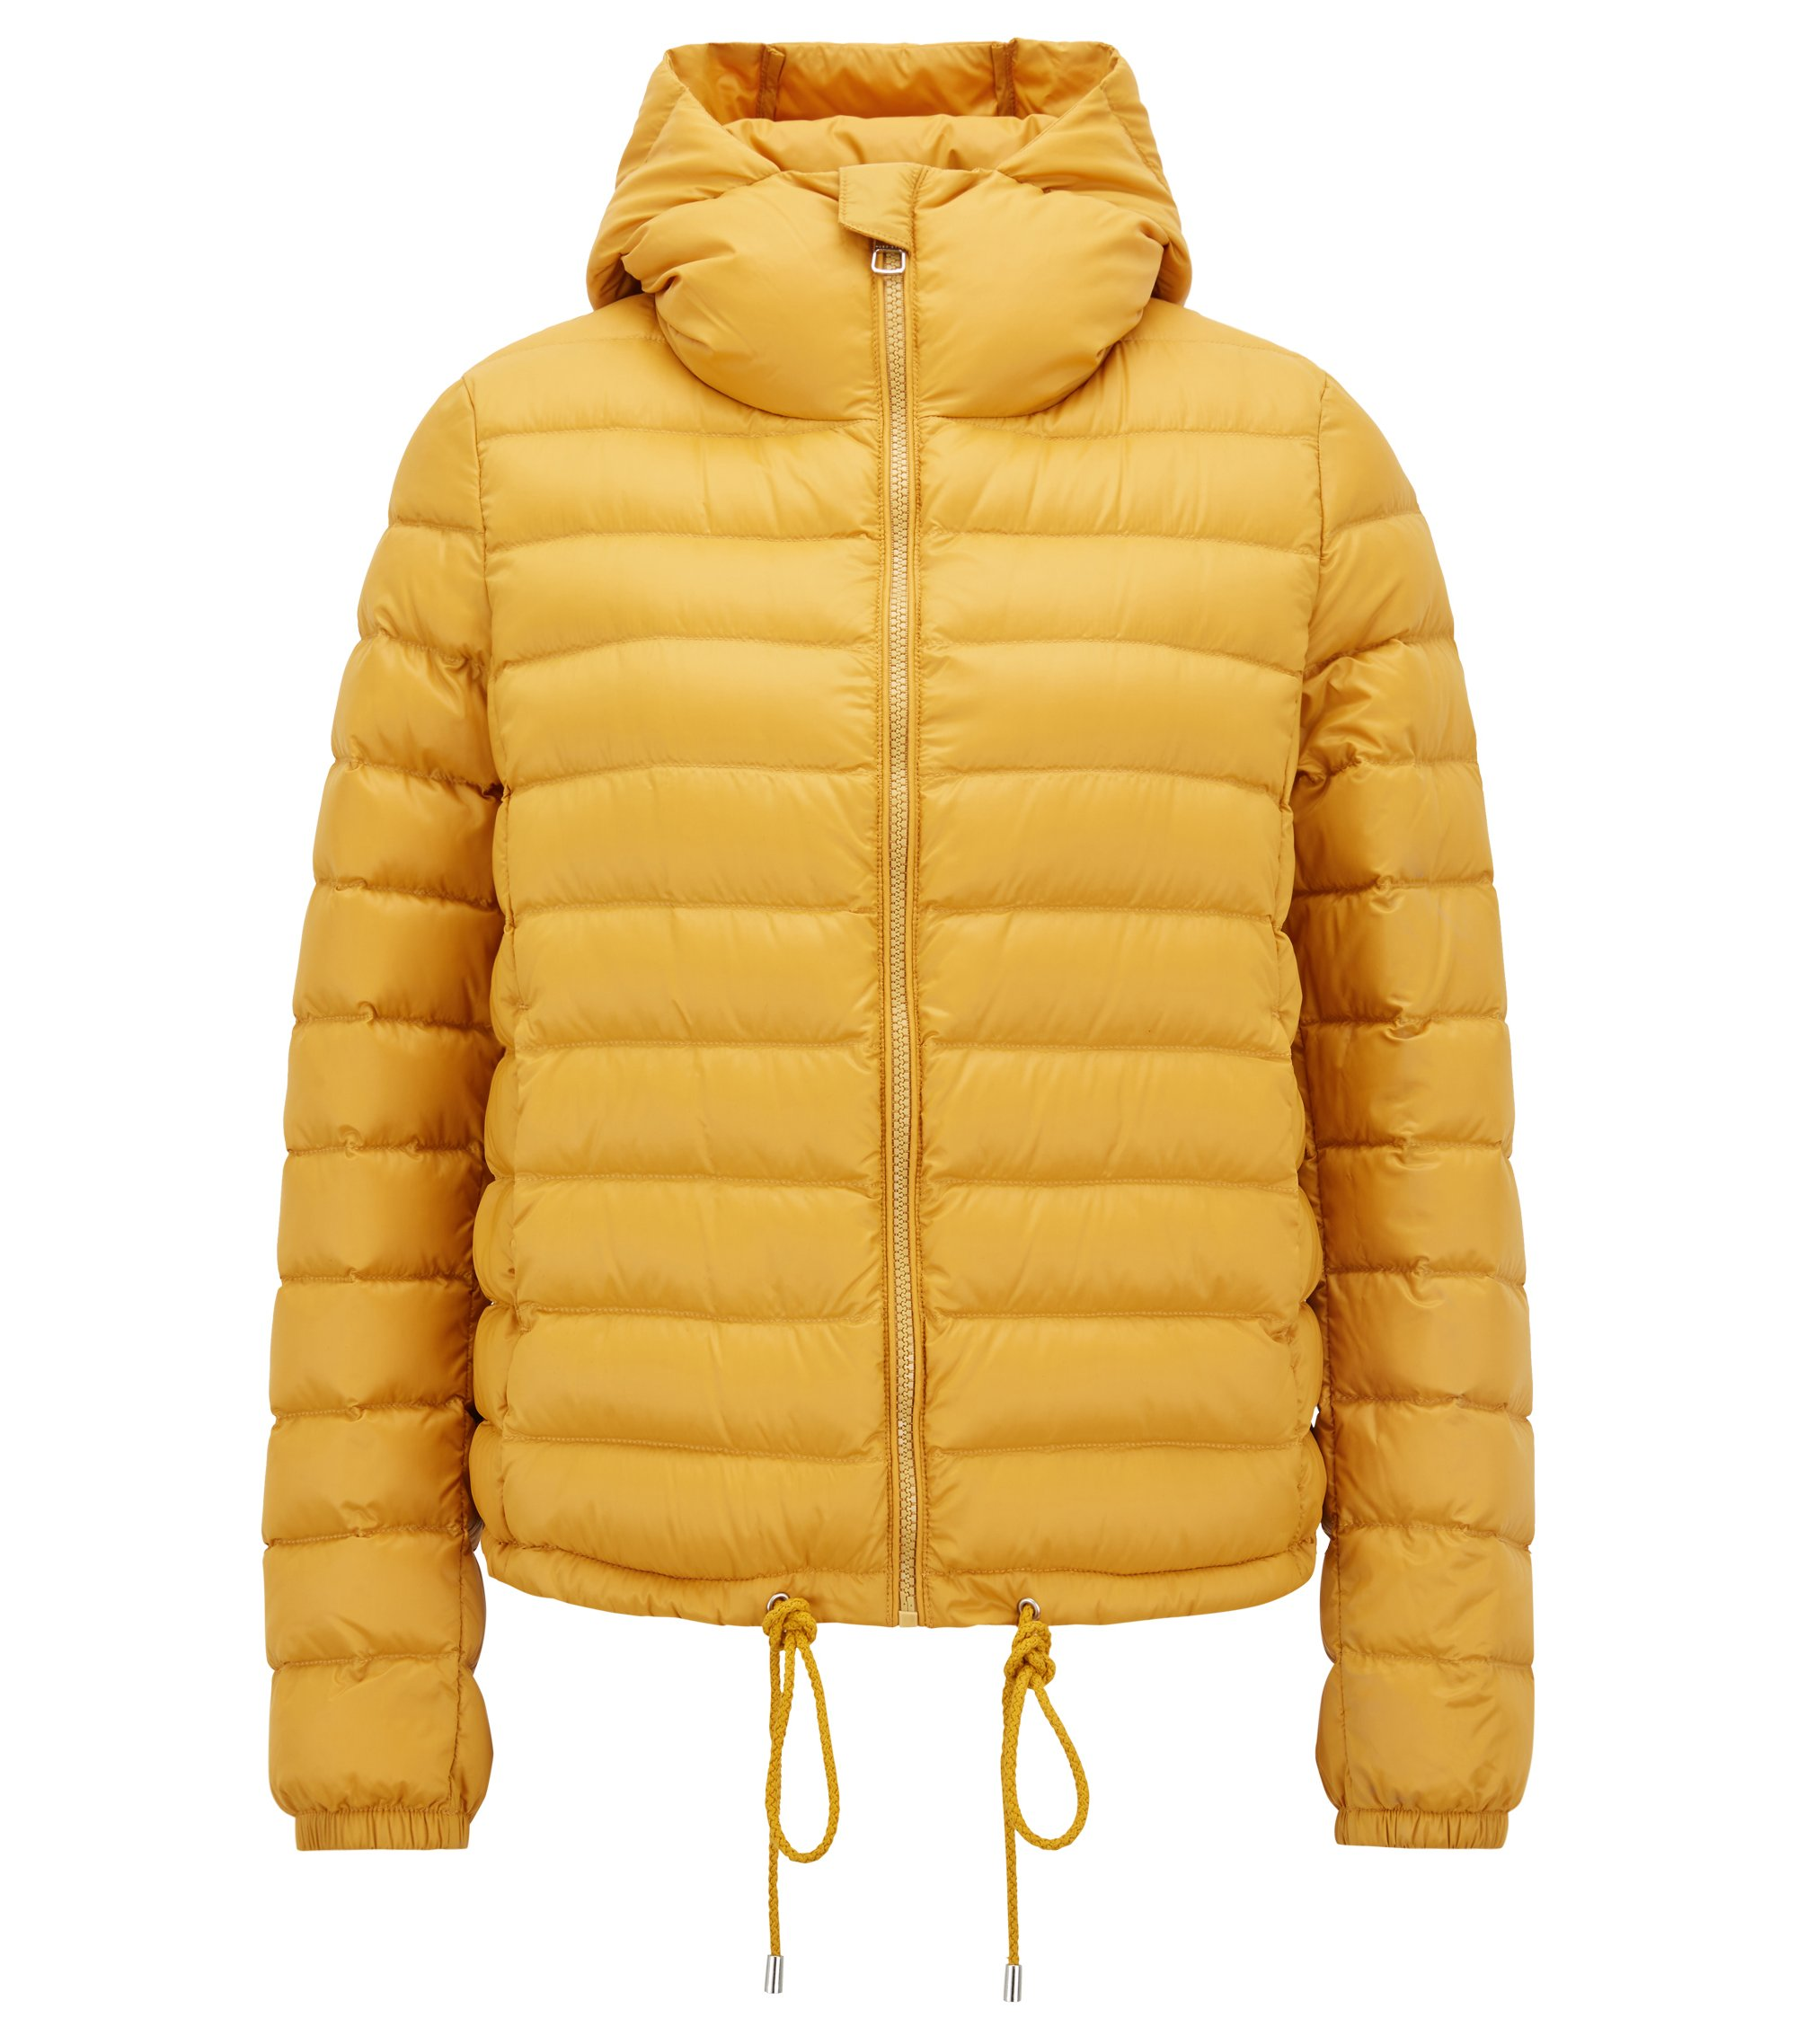 Lightweight down-filled jacket with water-repellent outer, Gold